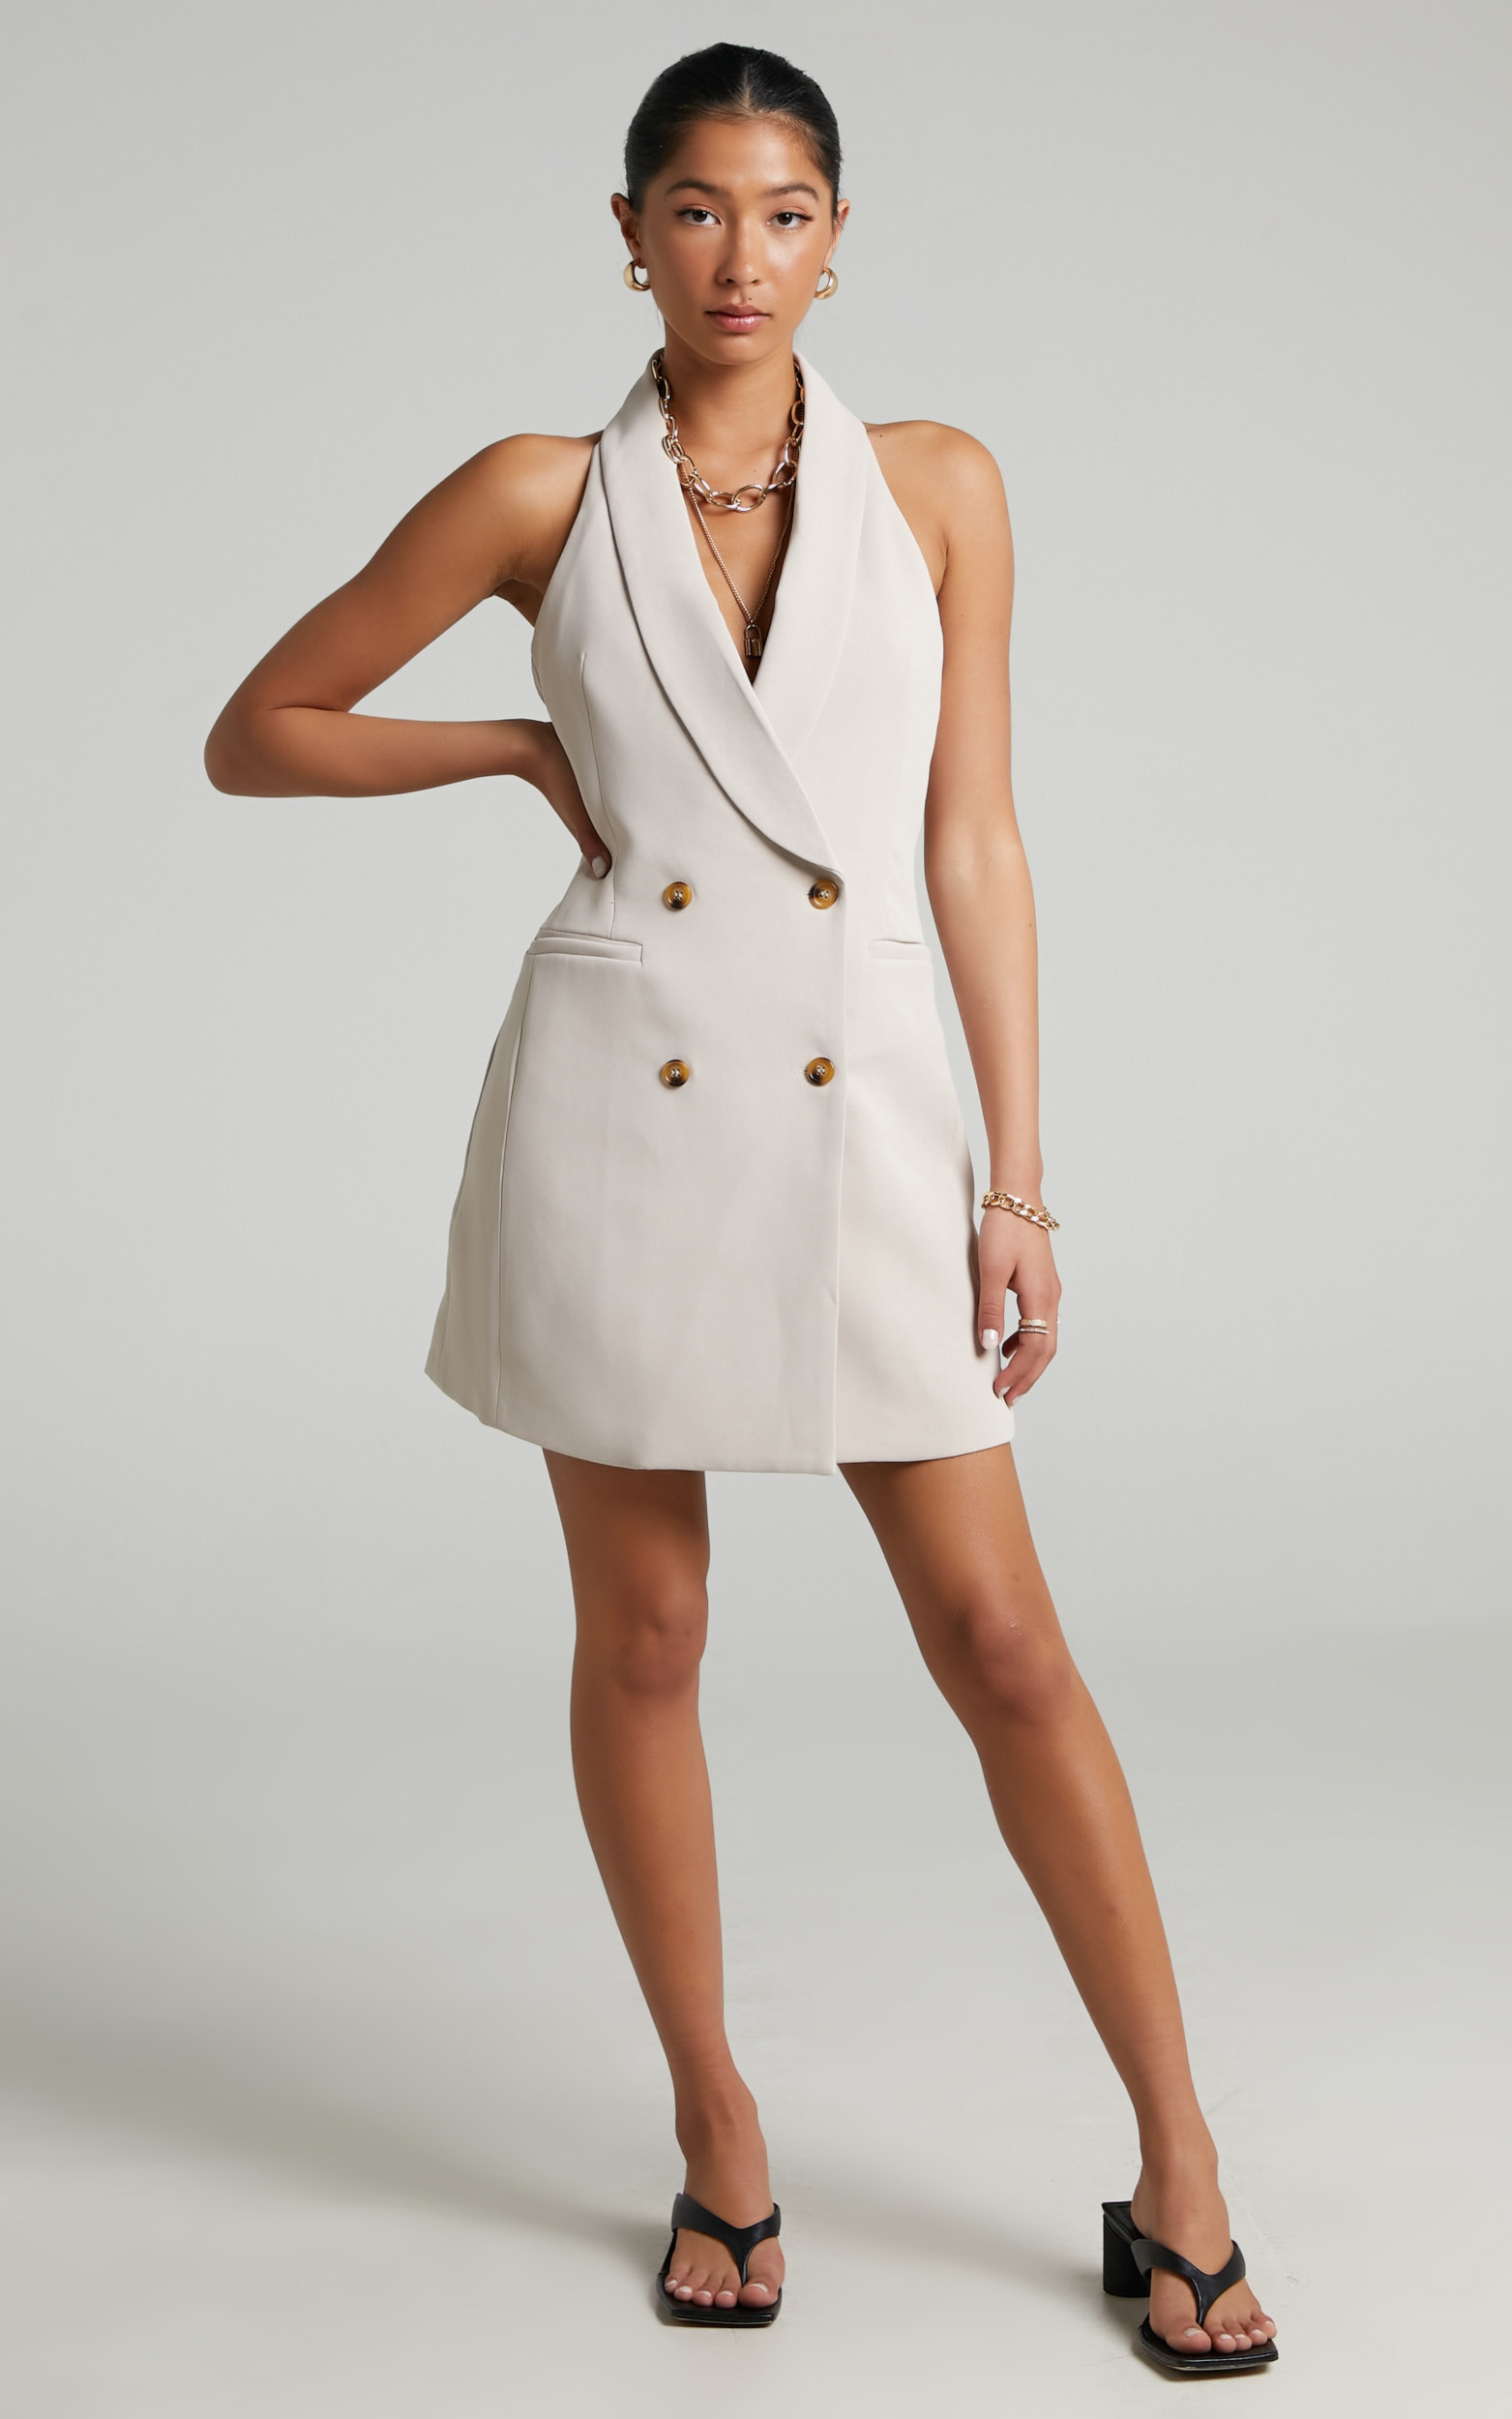 Kenny Waistcoat Mini Dress with Open Back in Light Camel - 04, BRN1, hi-res image number null